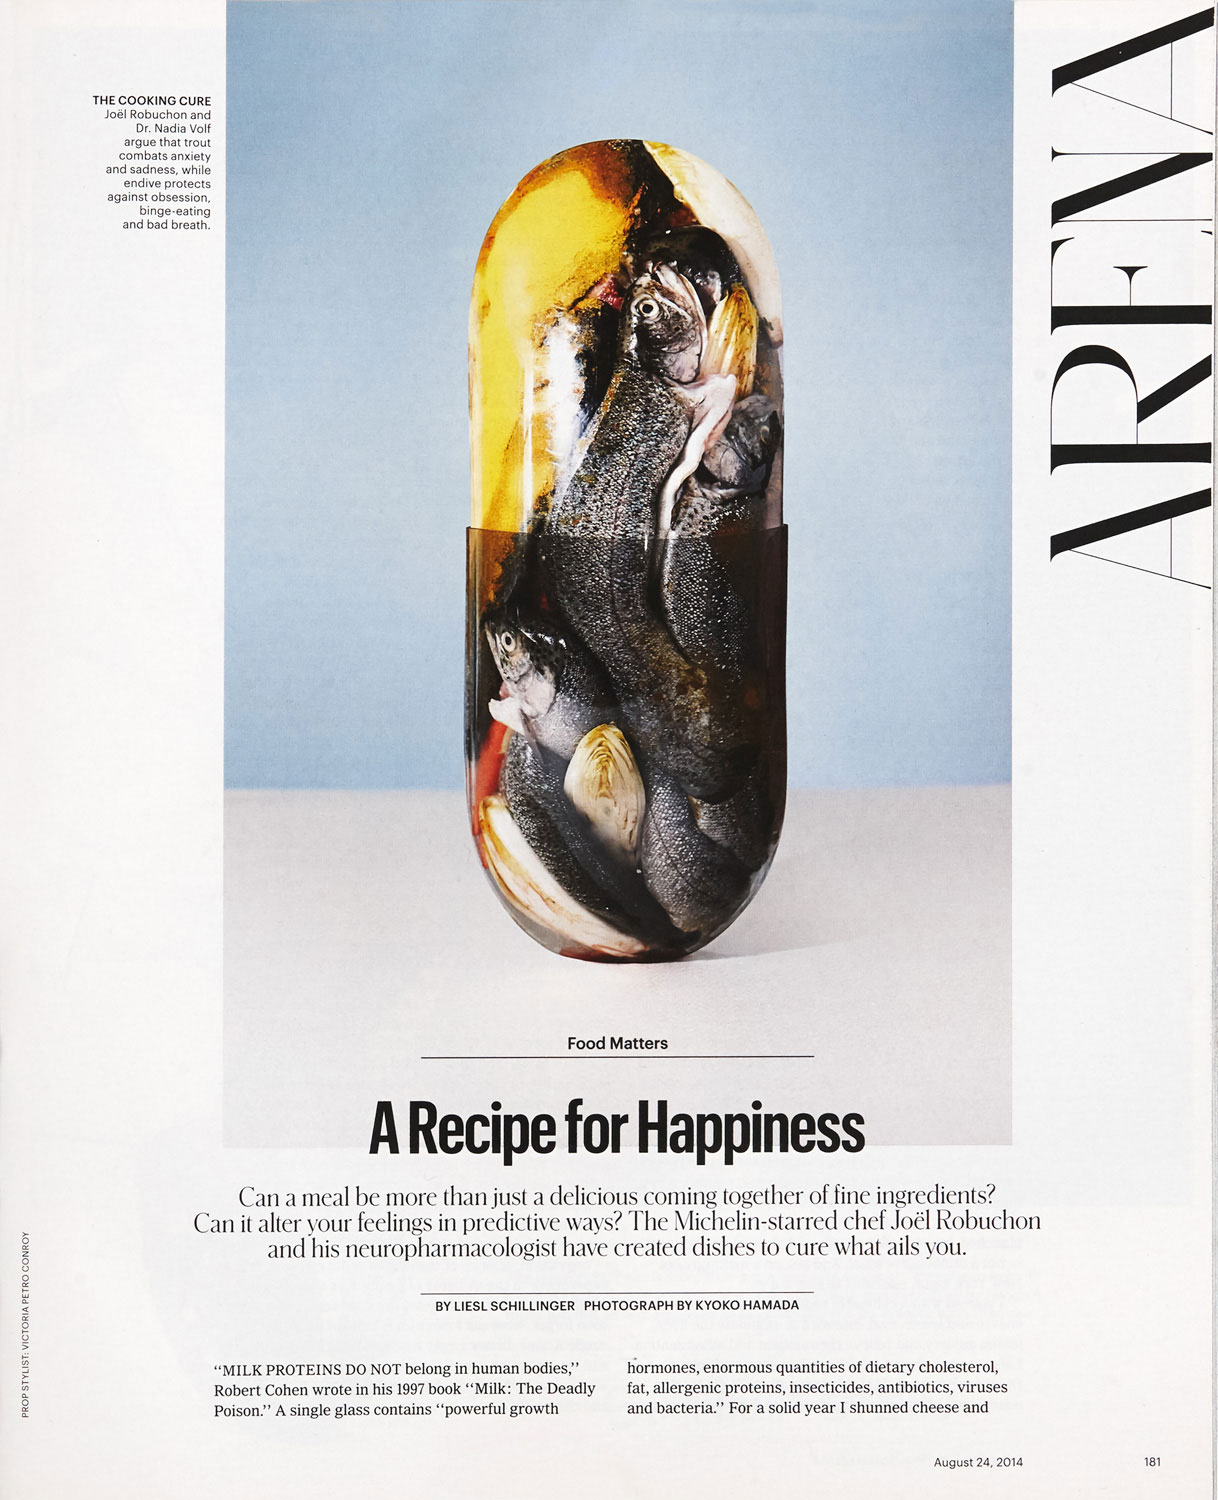 A Recipe for Happiness - The New York Times Style Guide